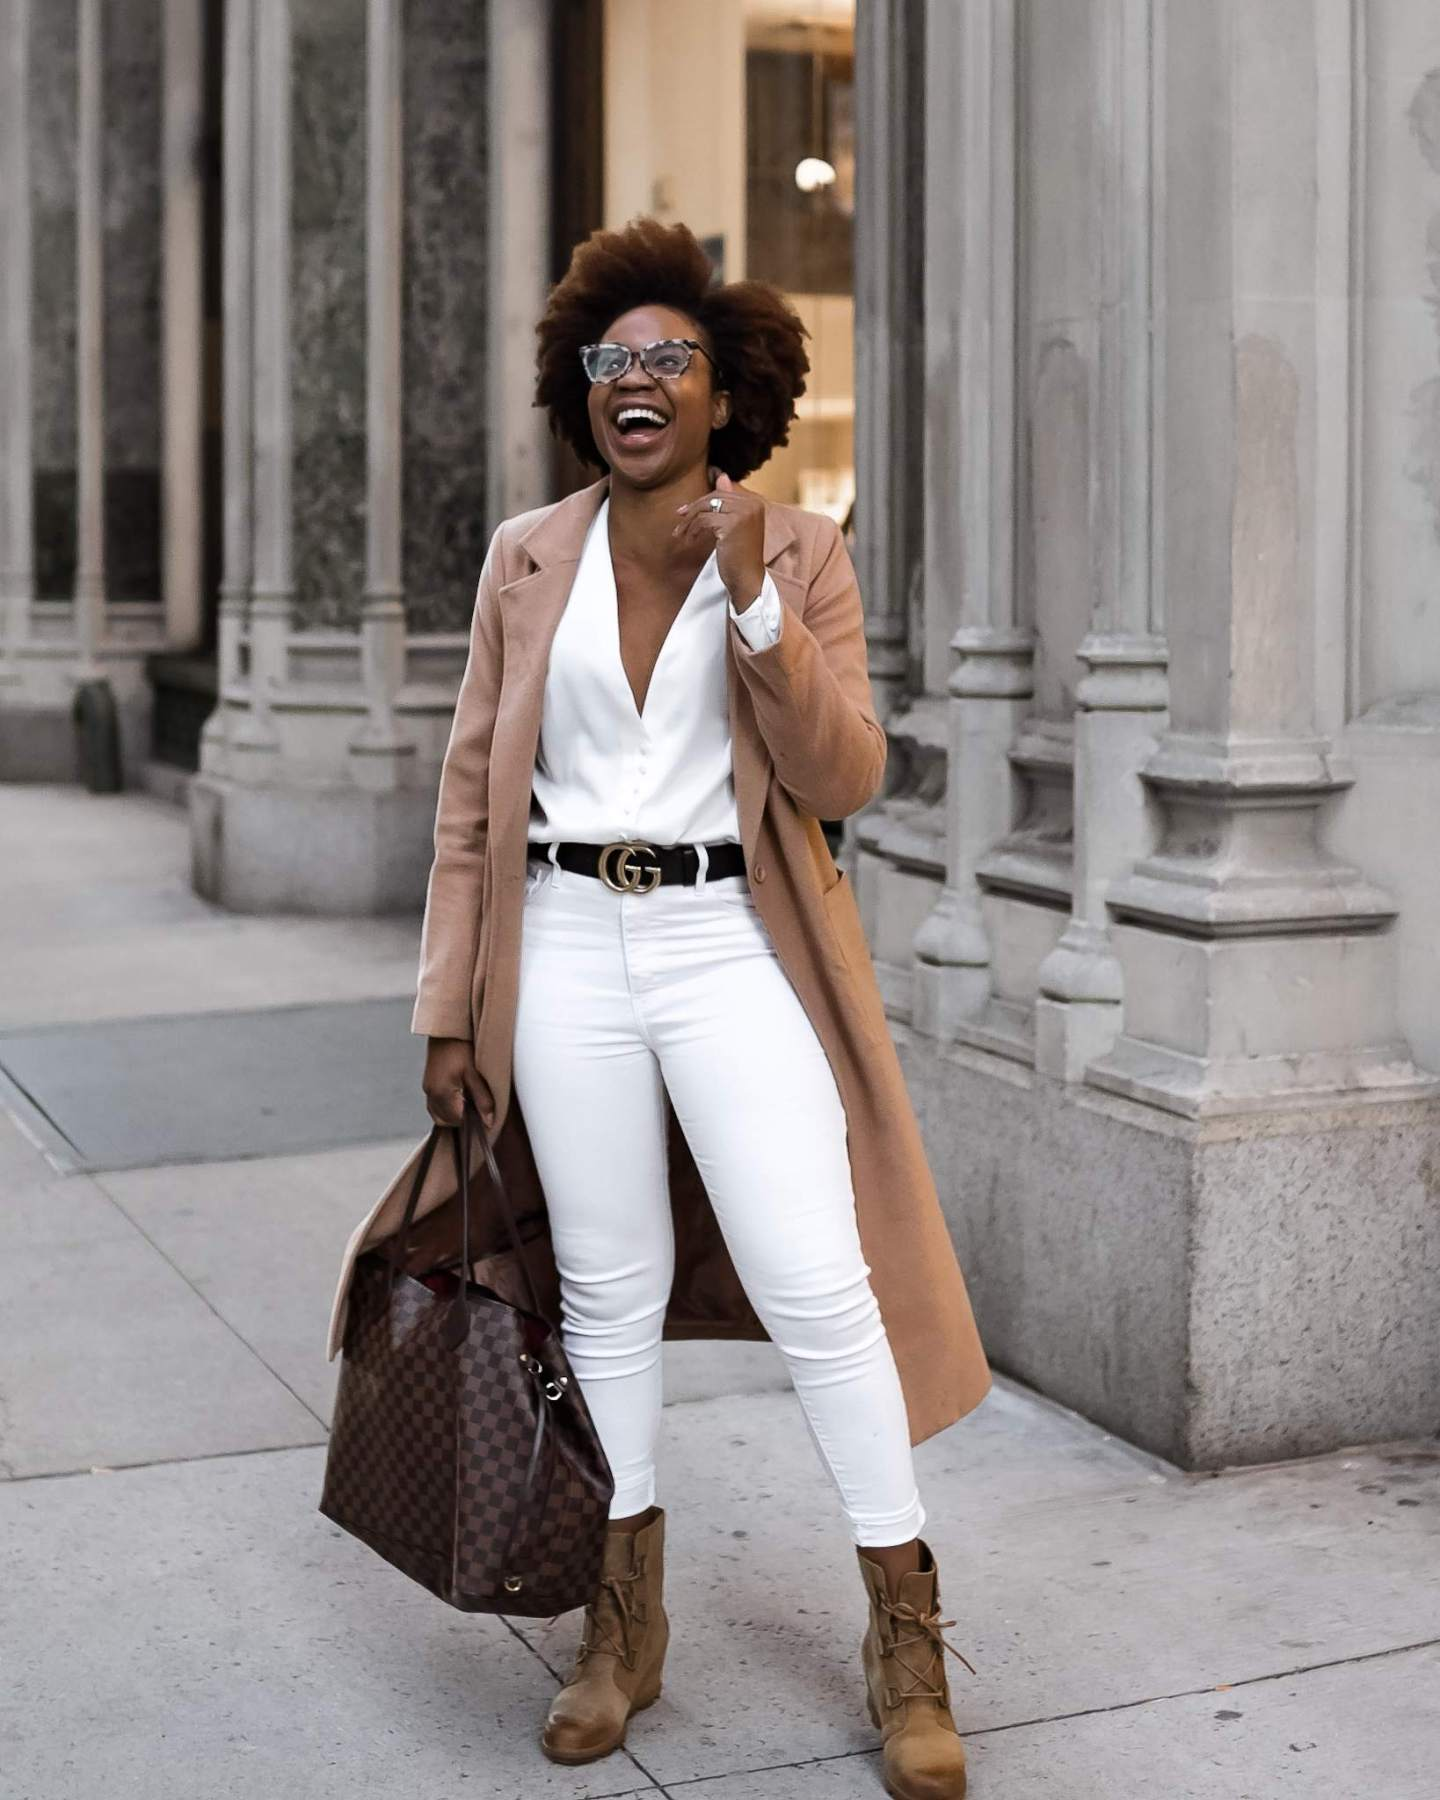 Lifestyle blogger Ijeoma Kola wears white and camel winter outfit with Louis Vuitton Neverfull tote bag